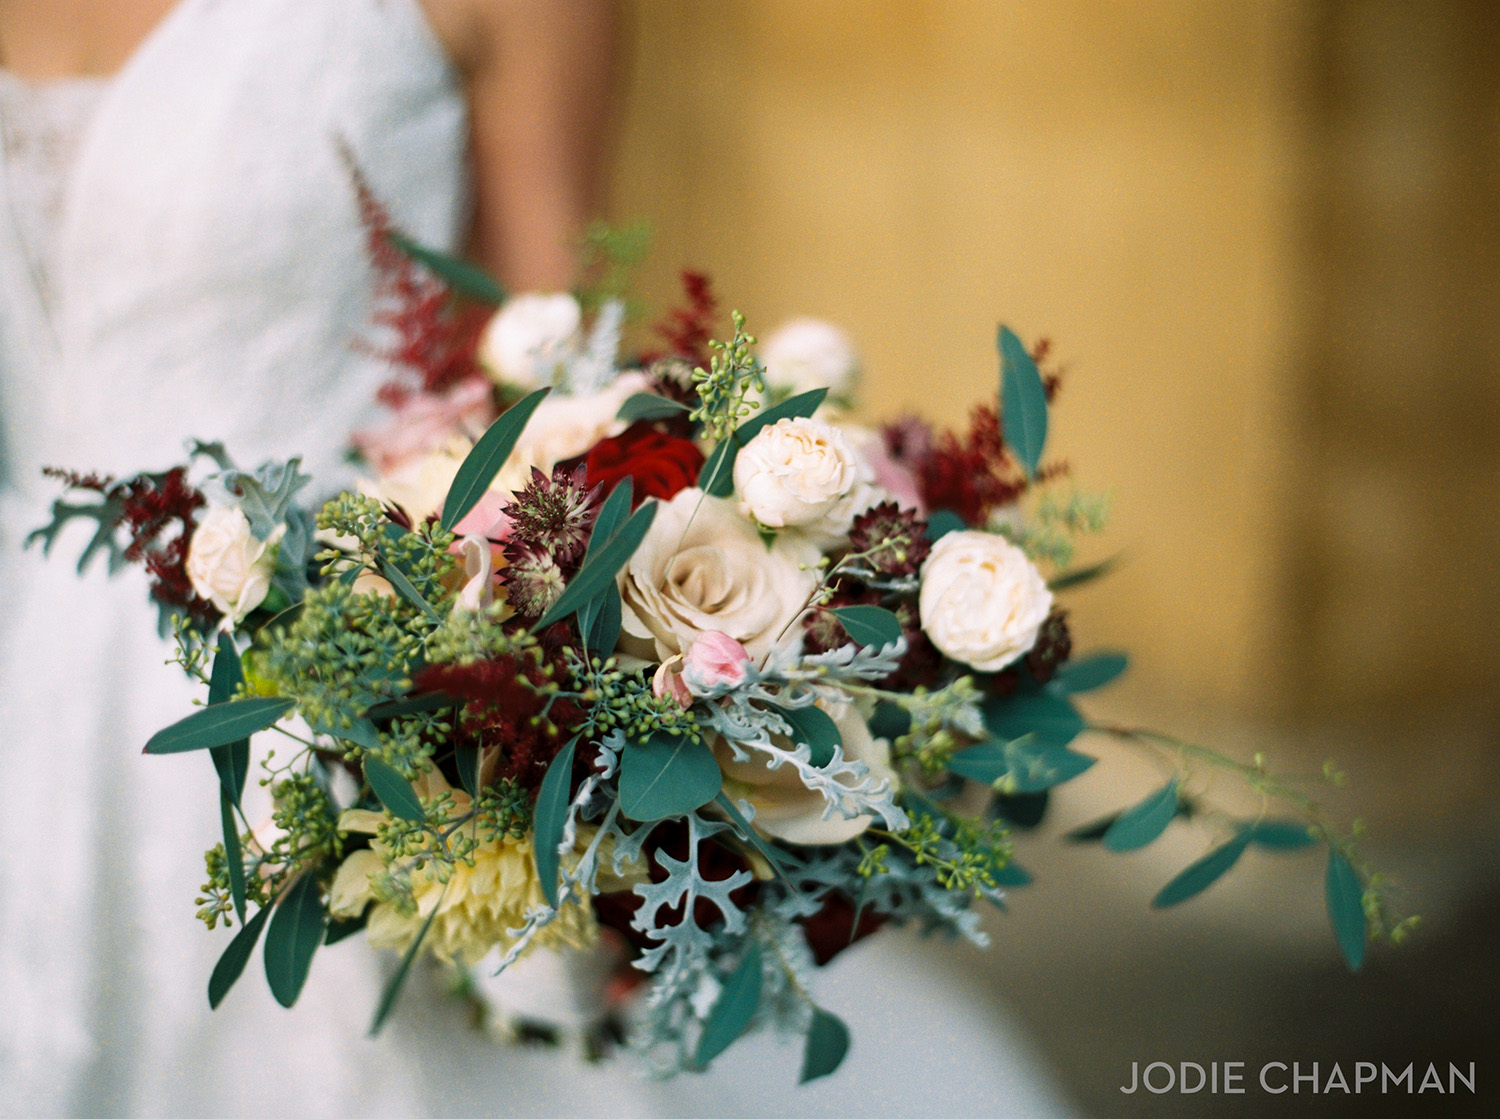 winter wedding bouquet at st luke's church chelsea